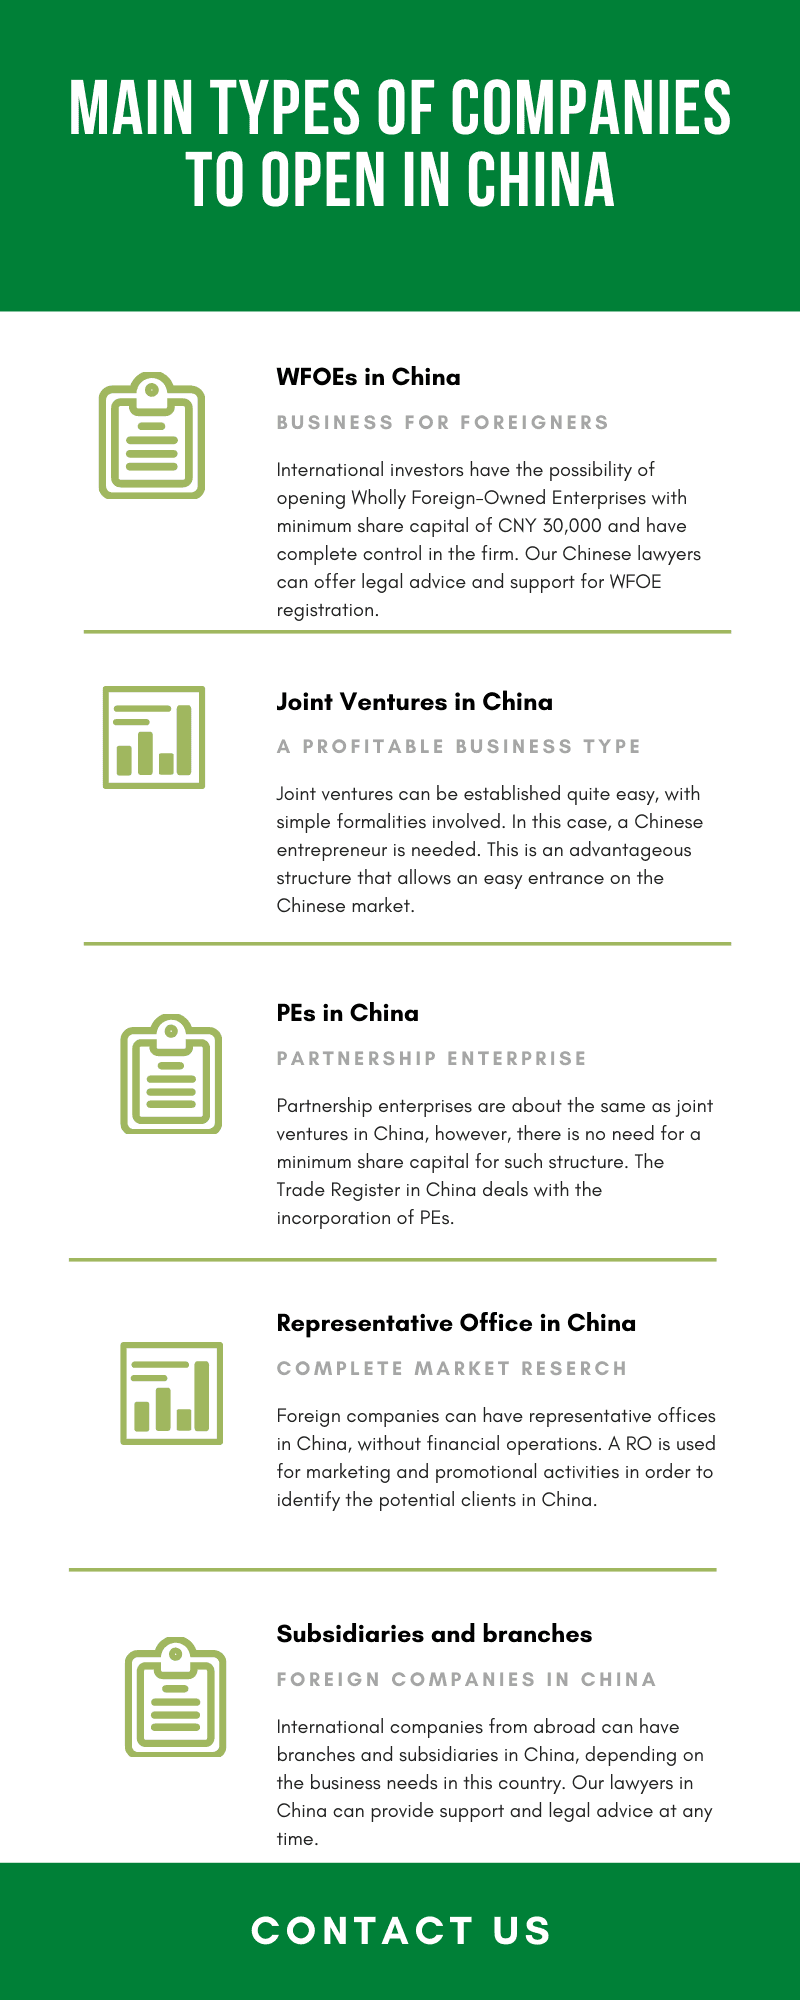 Main types of companies to open in China1.png